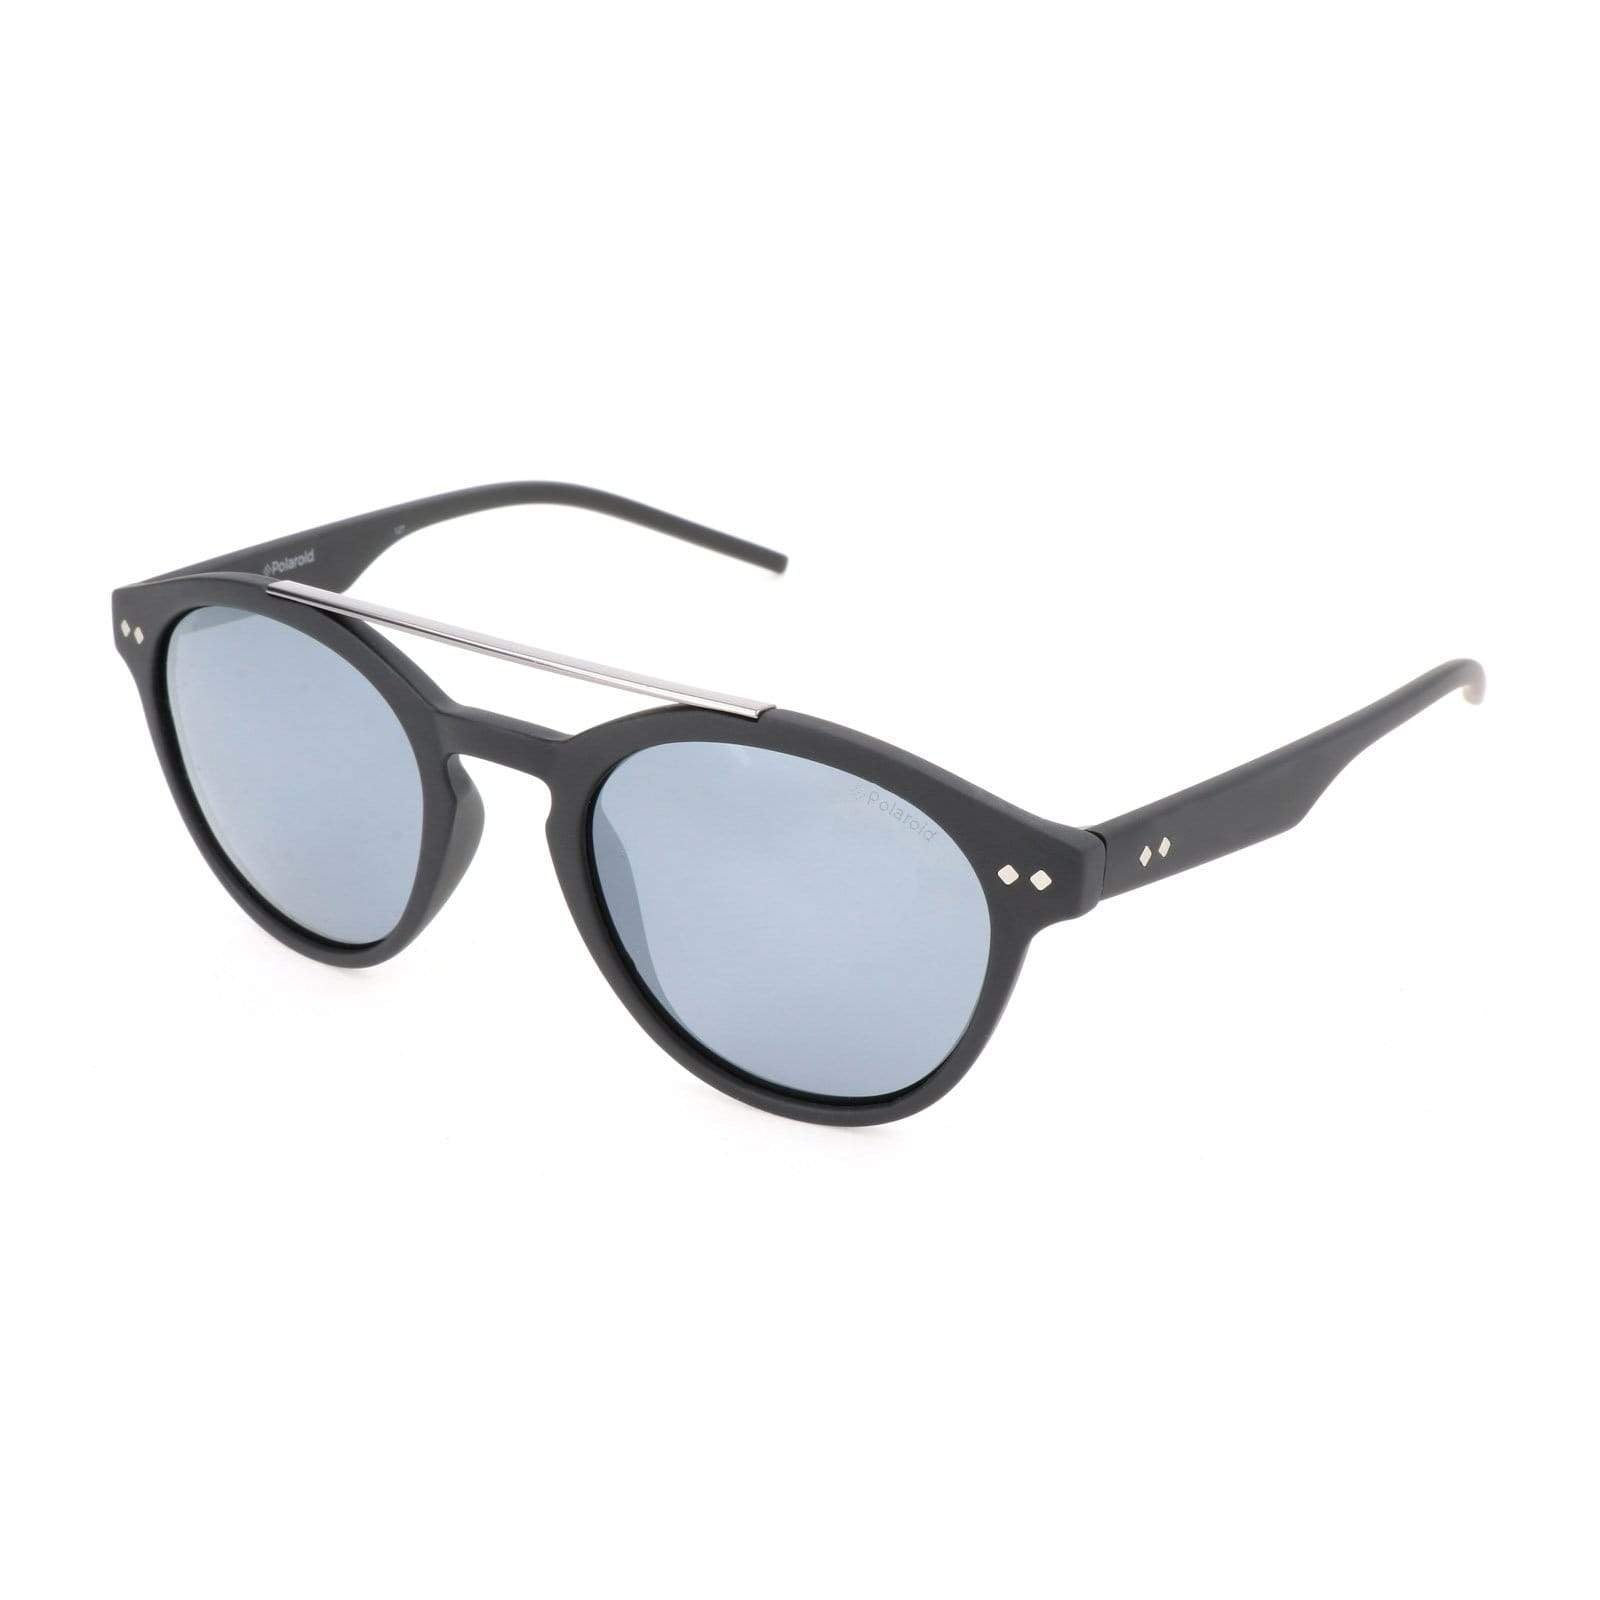 Polaroid Accessories Sunglasses black-3 / NOSIZE Polaroid - PLD6030S